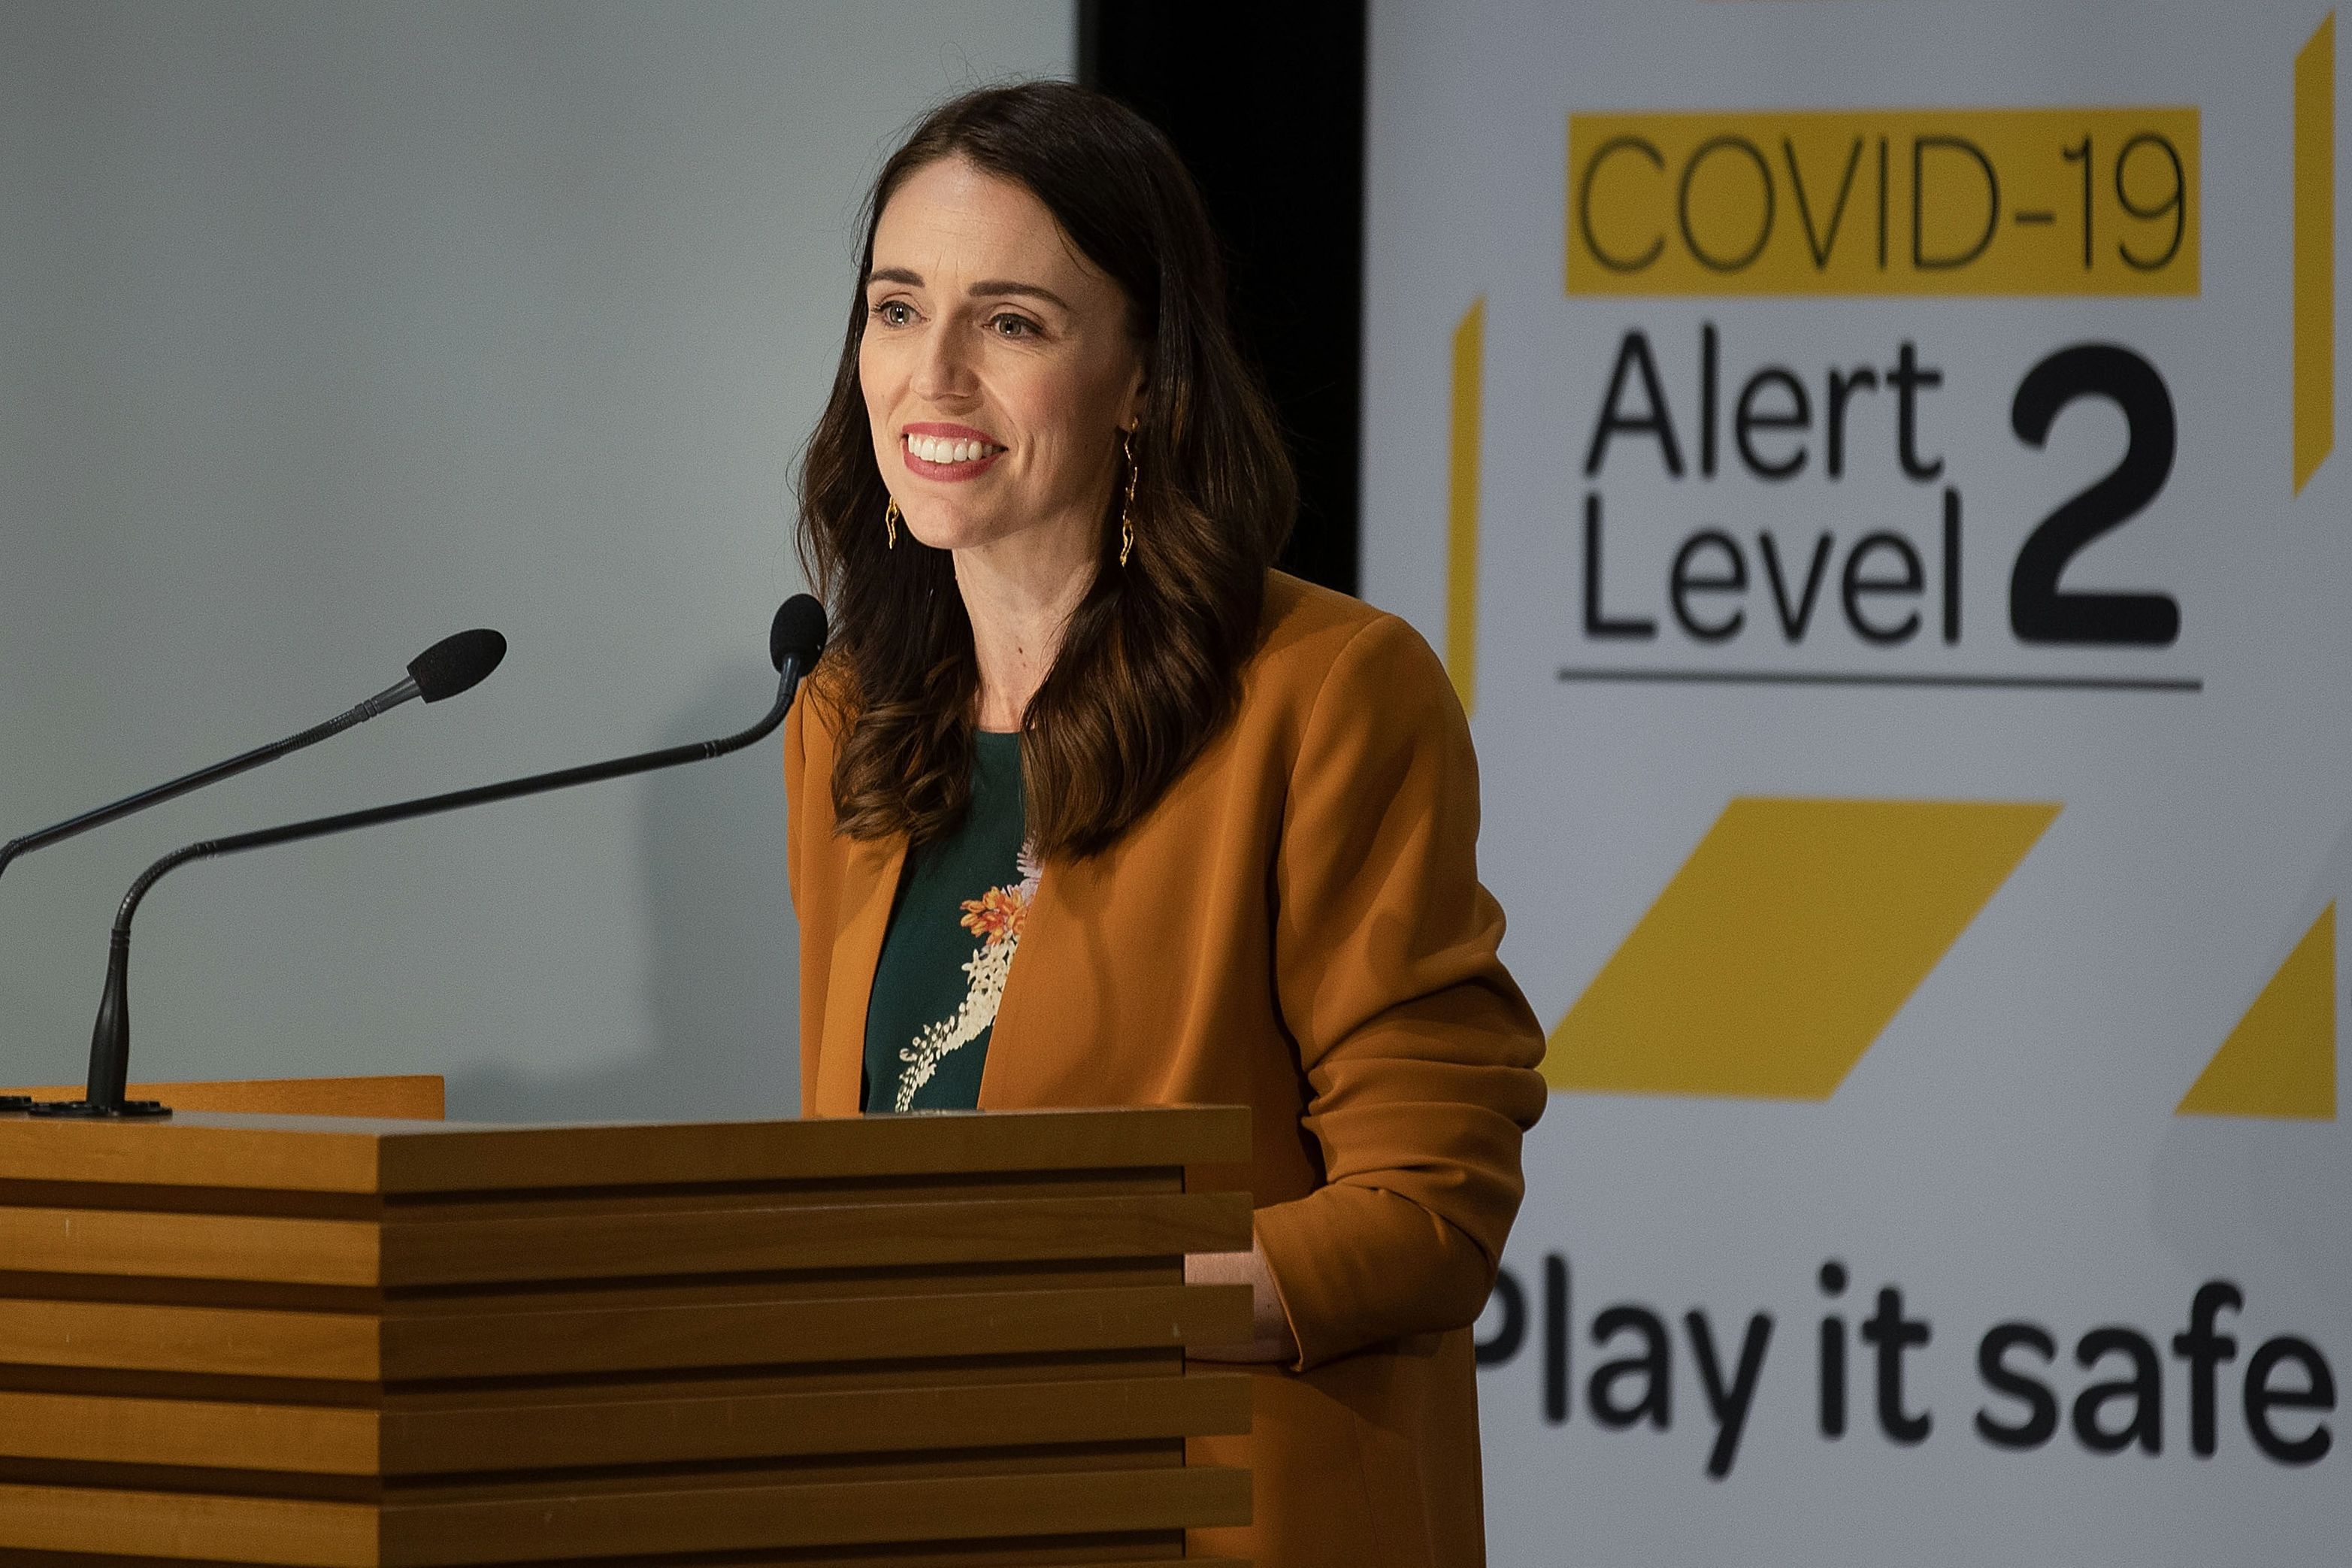 New Zealand Now Free Of Covid 19 Able To Remove Restrictions On Fans The Boston Globe